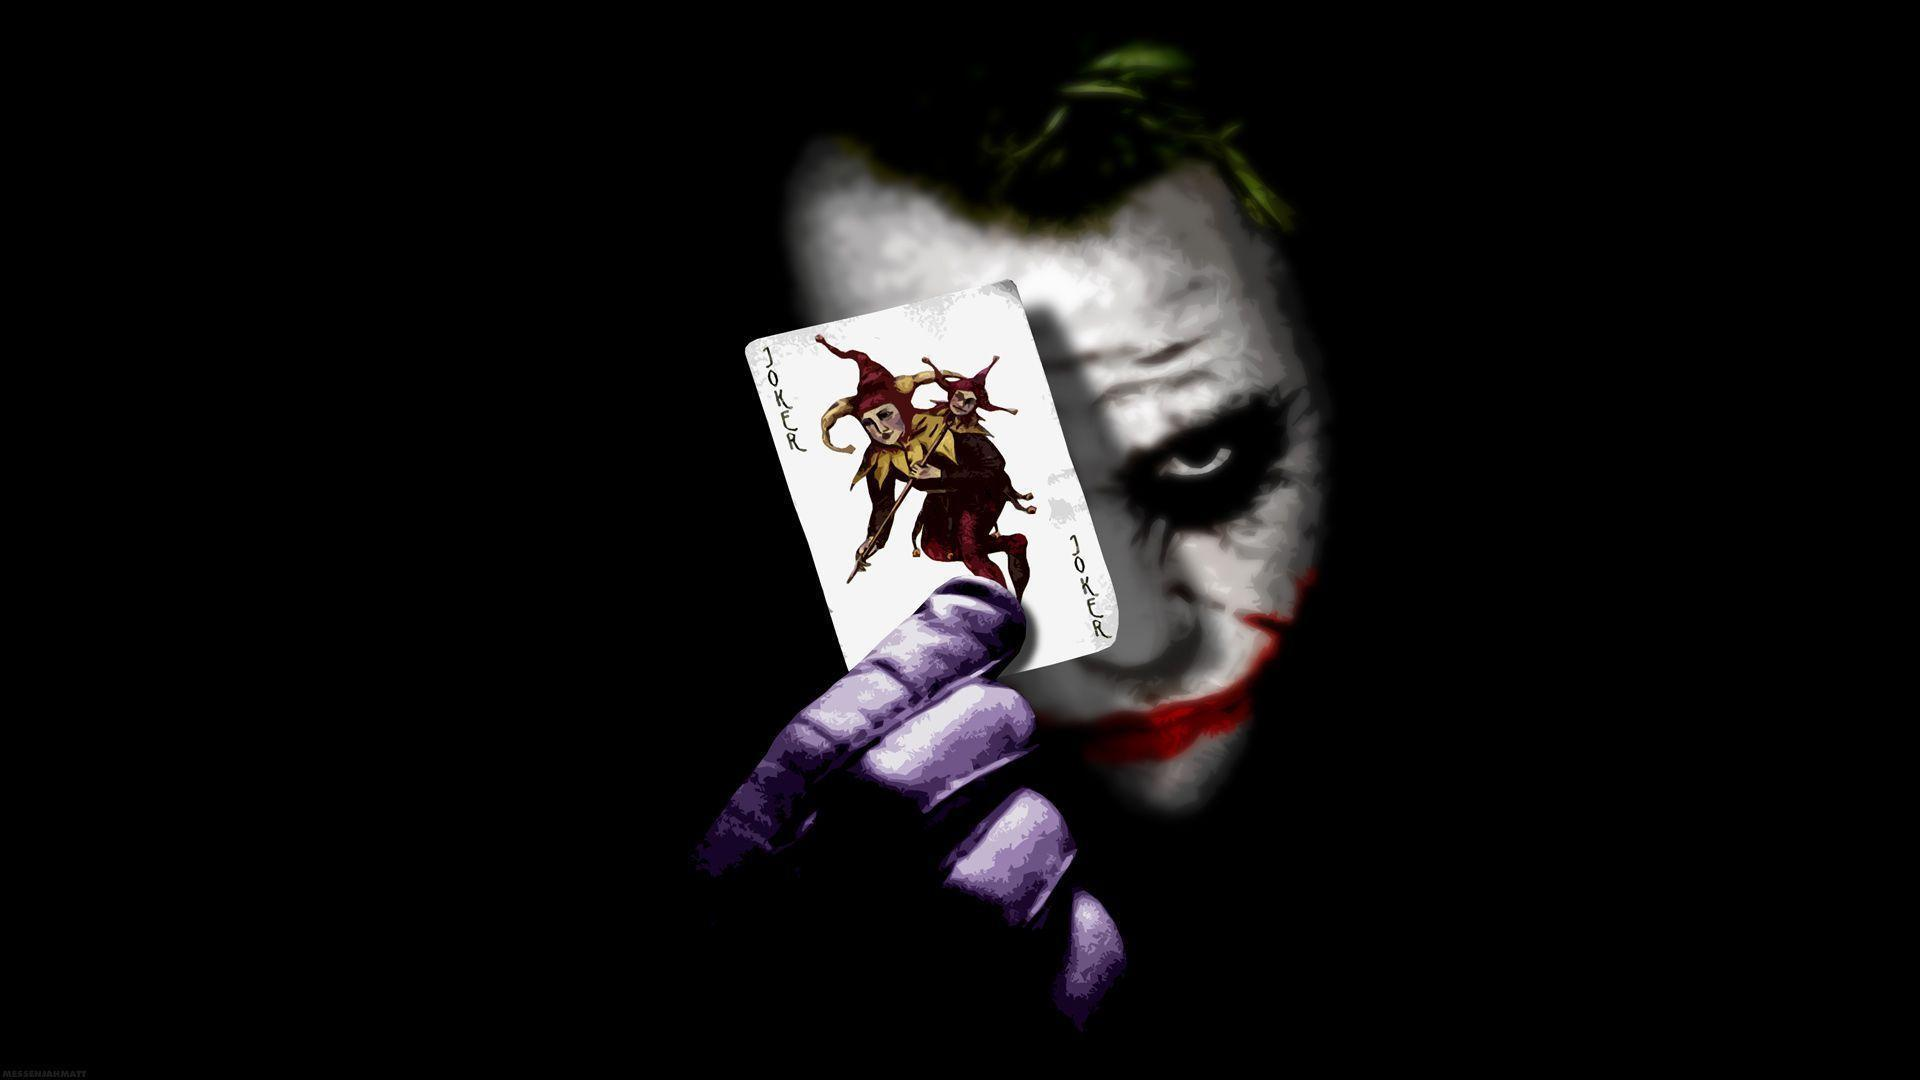 Wallpapers For > Joker Wallpaper Hd 1920x1080